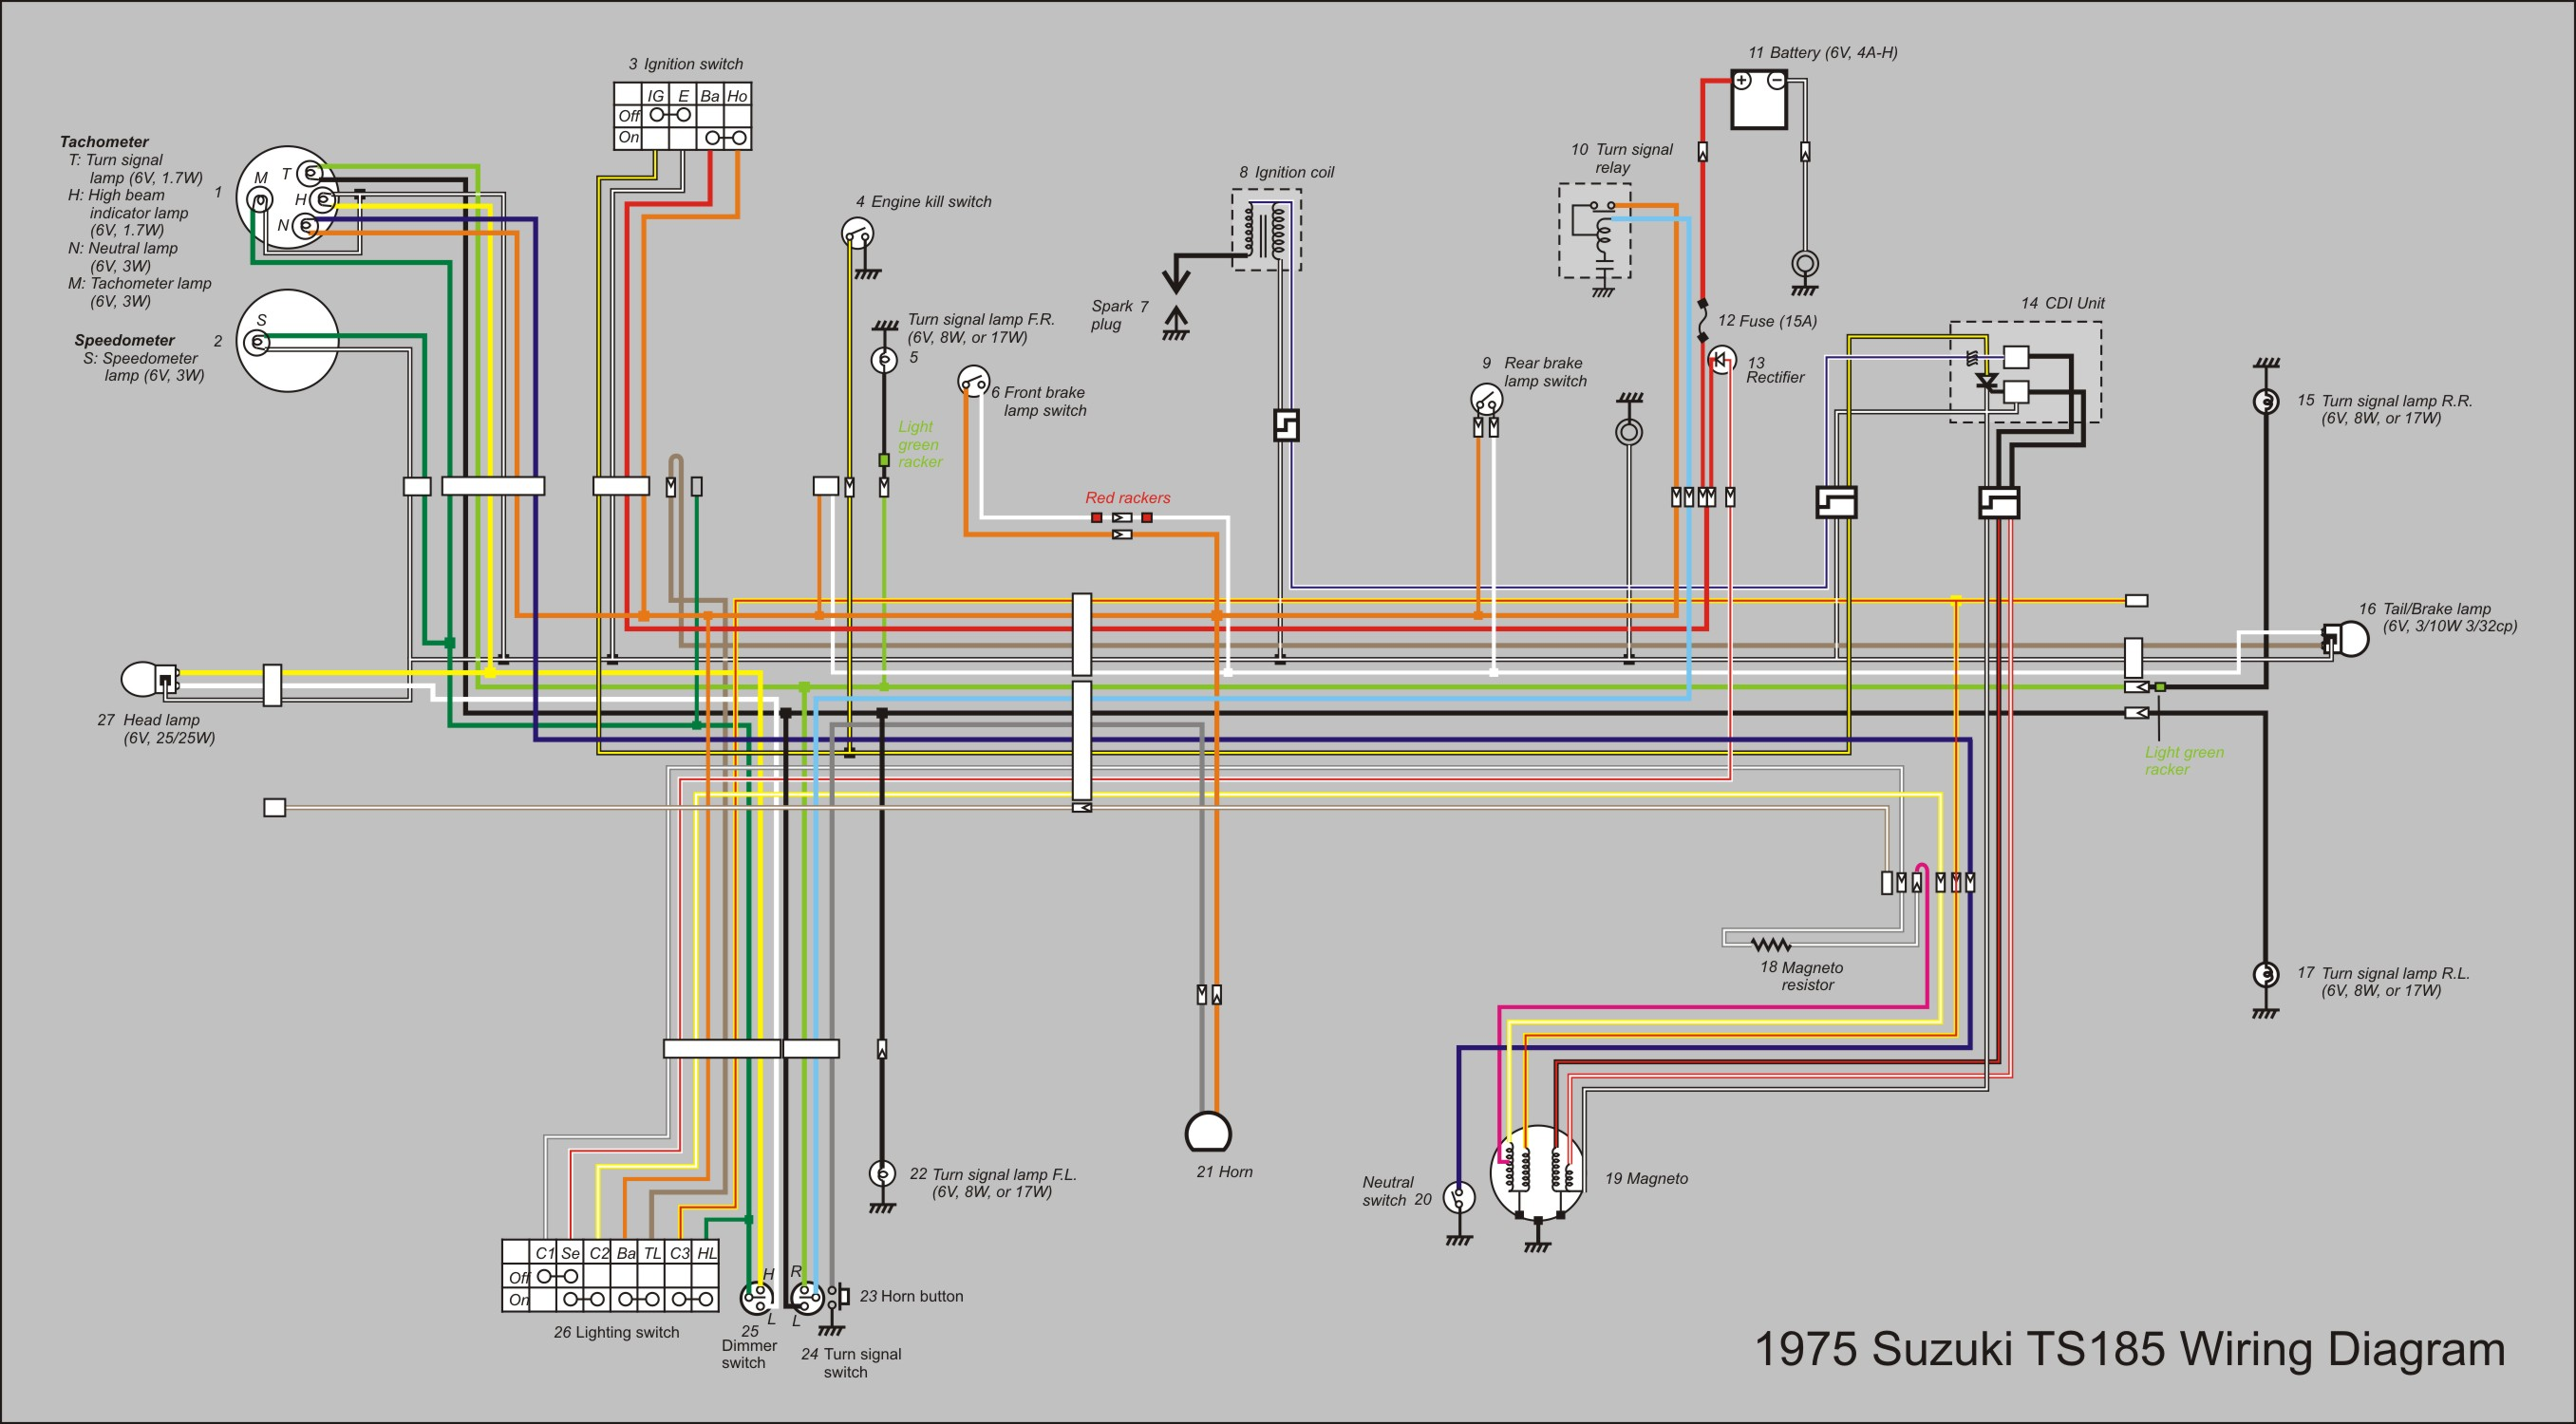 Filets185 Wiring Diagram New Wikimedia Commons 1973 Mustang Fuse Box